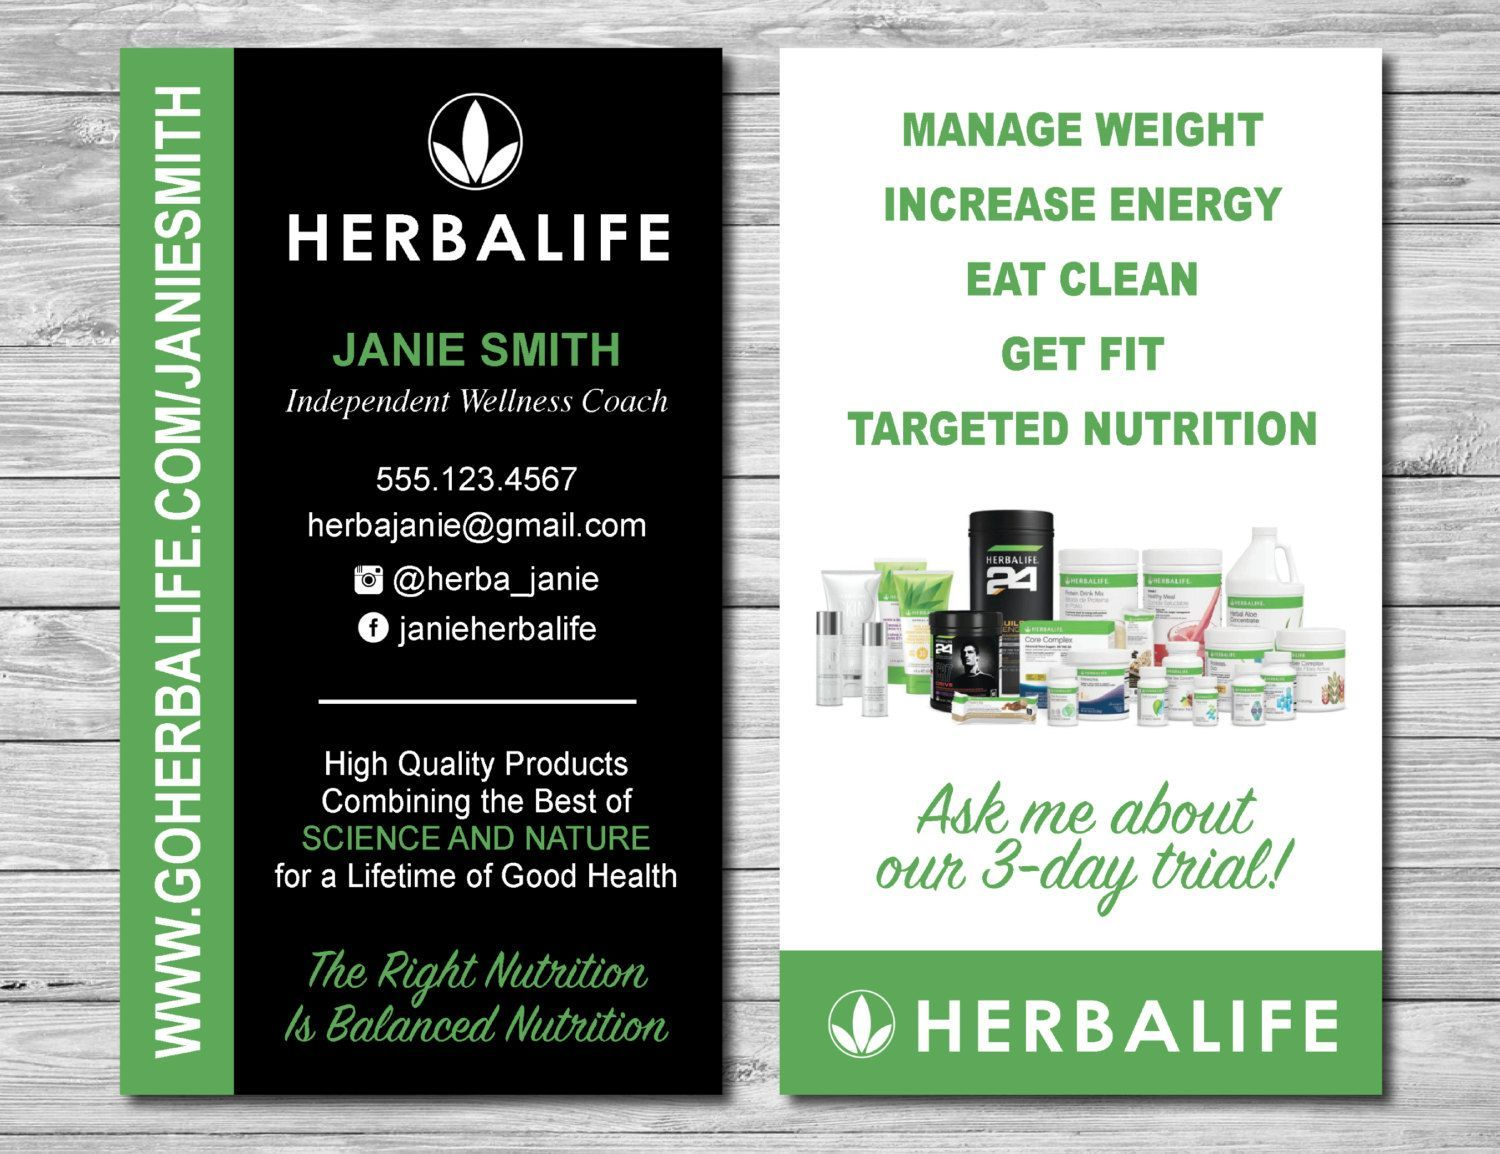 Herbalife Business Cards For Wellness Coach And Distributor By Kellibdesignstudio On Etsy Nutrition Herbalife Business Cards Herbalife Business Herbalife